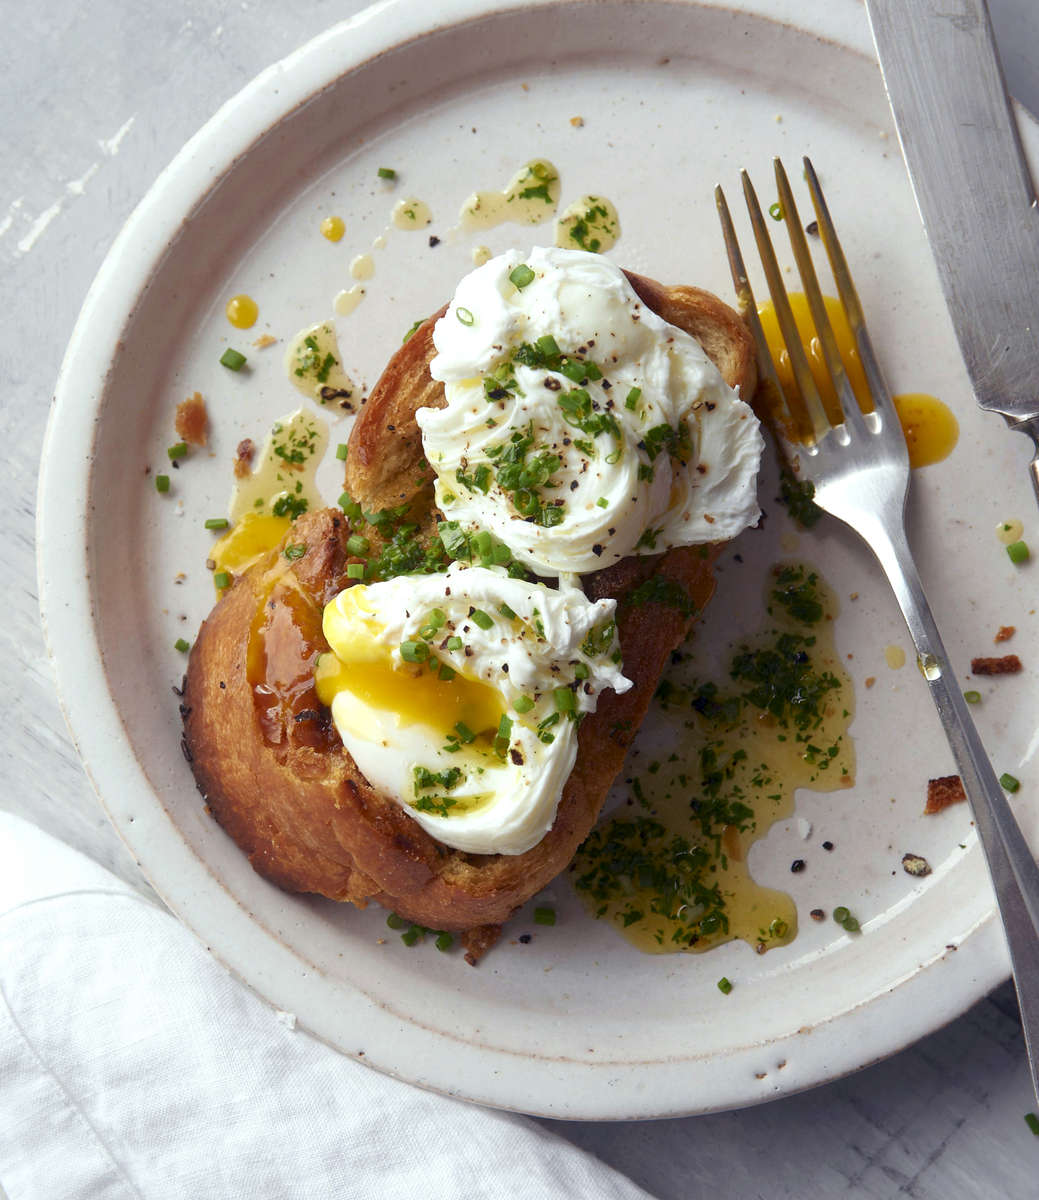 Poached eggs,